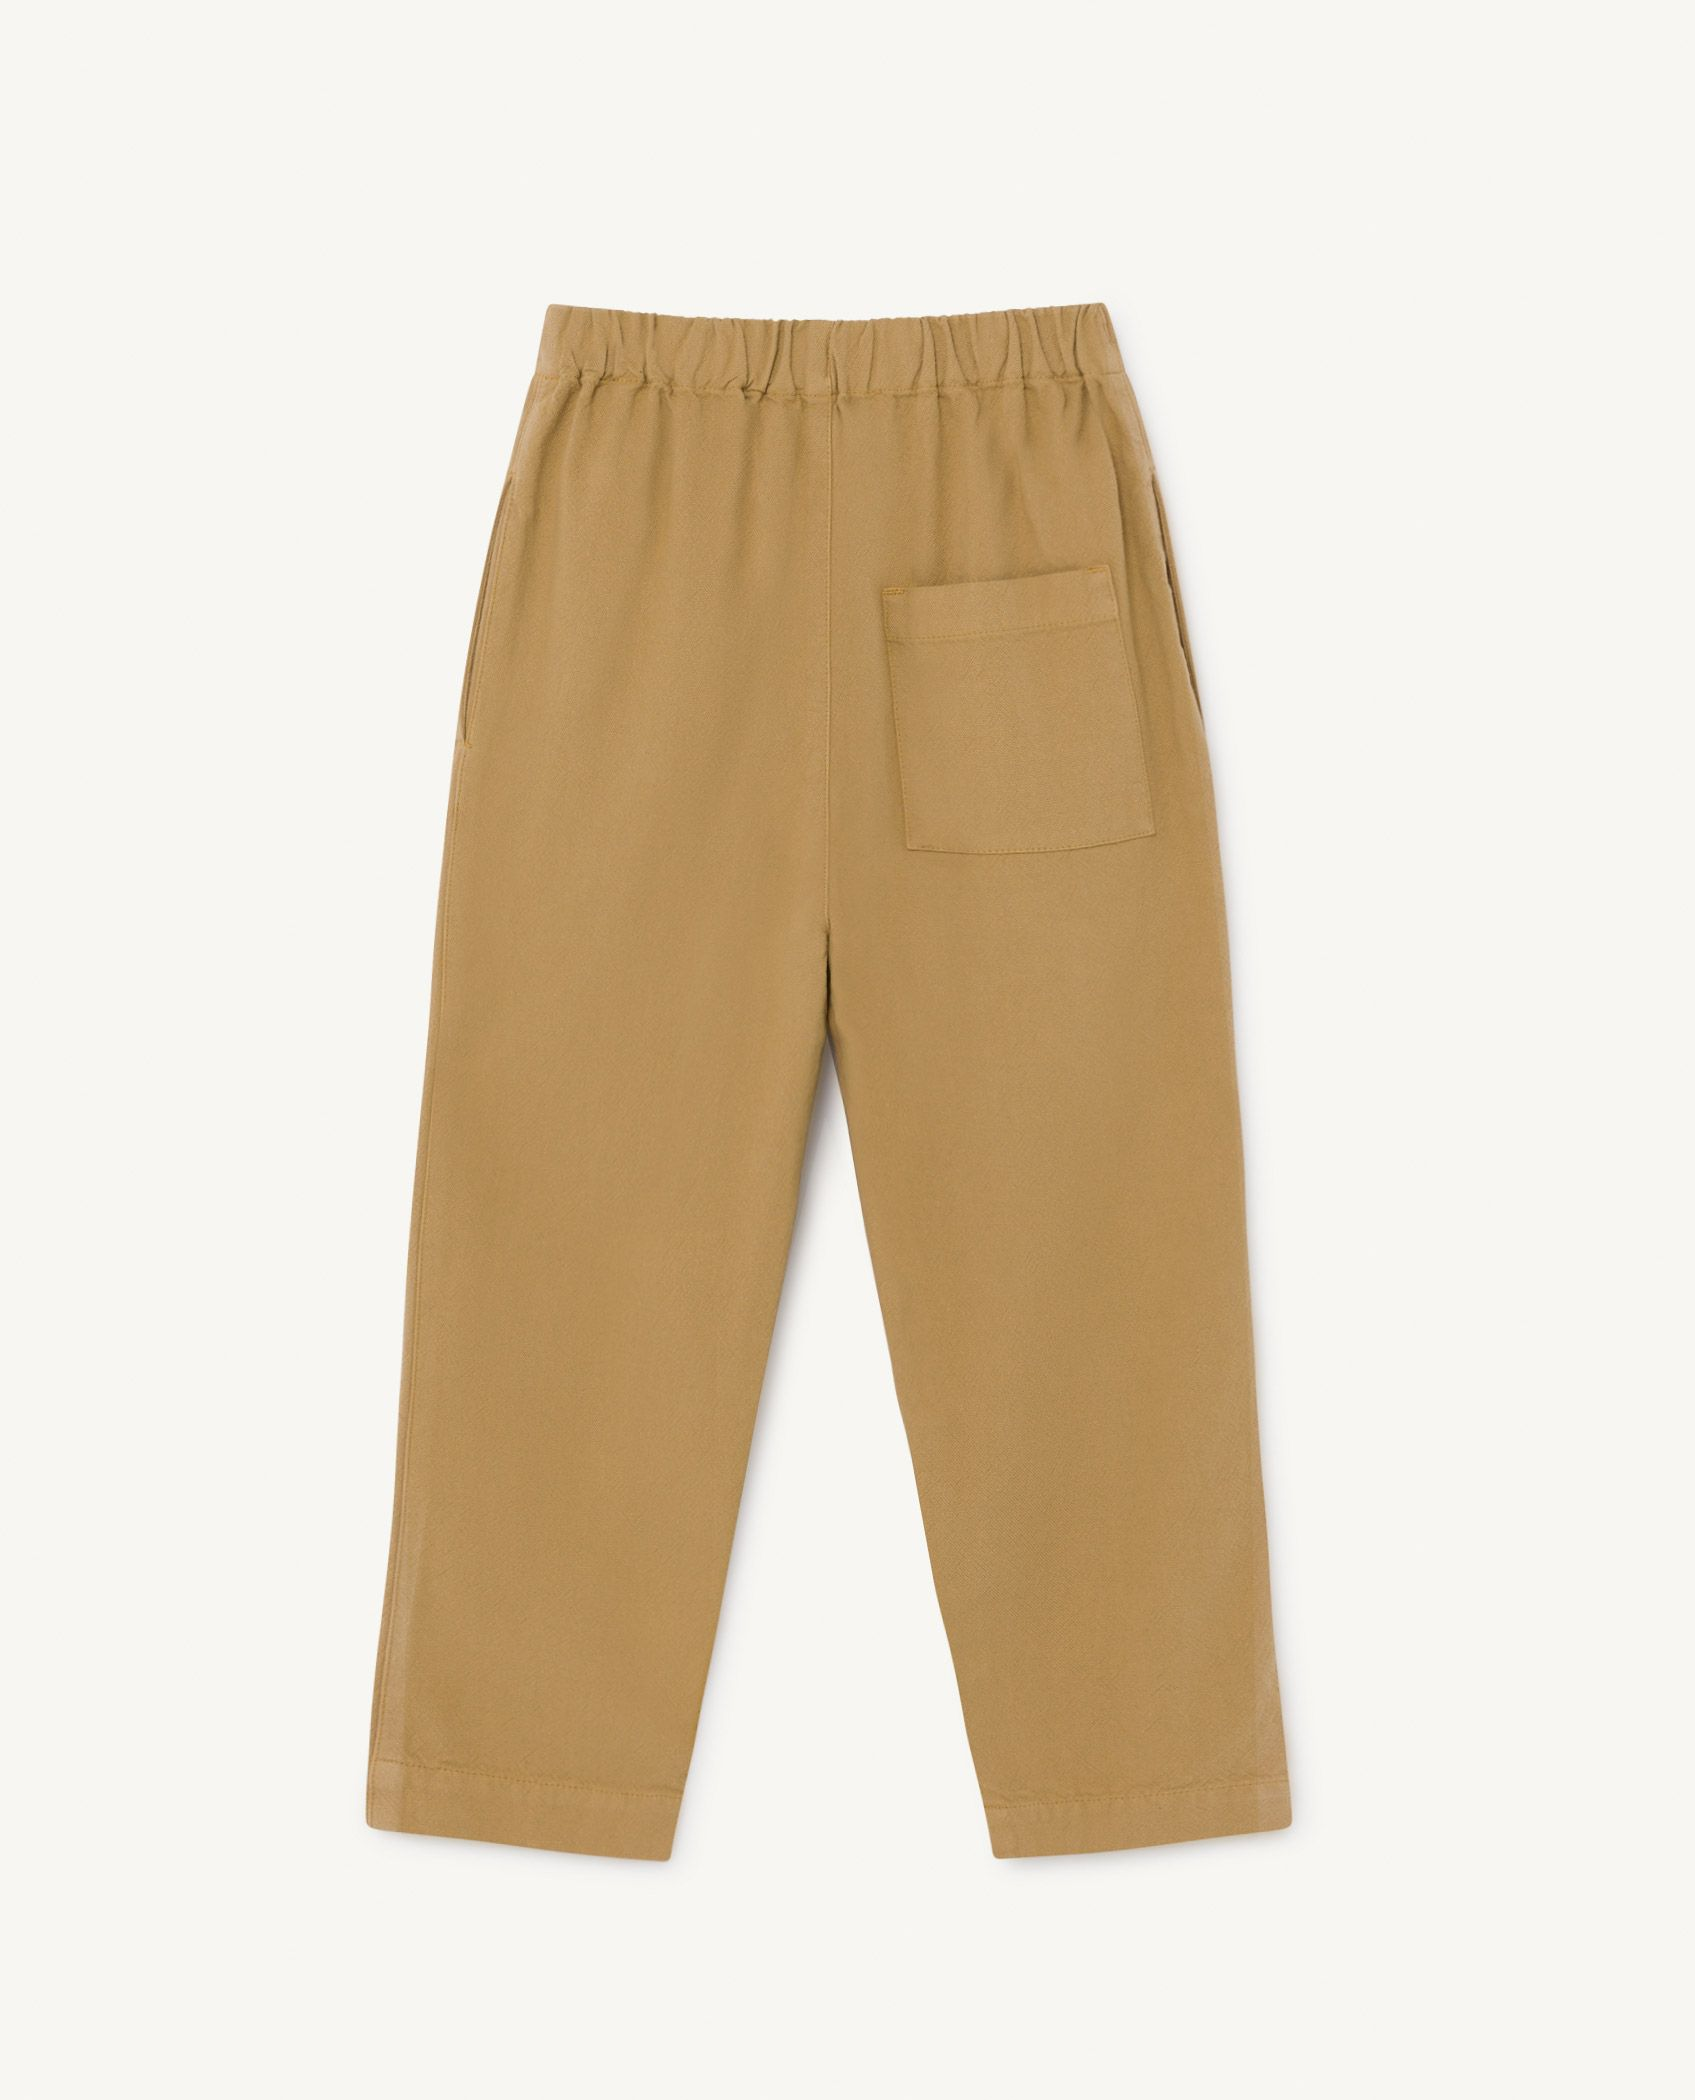 Brown Elephant Pants img-2